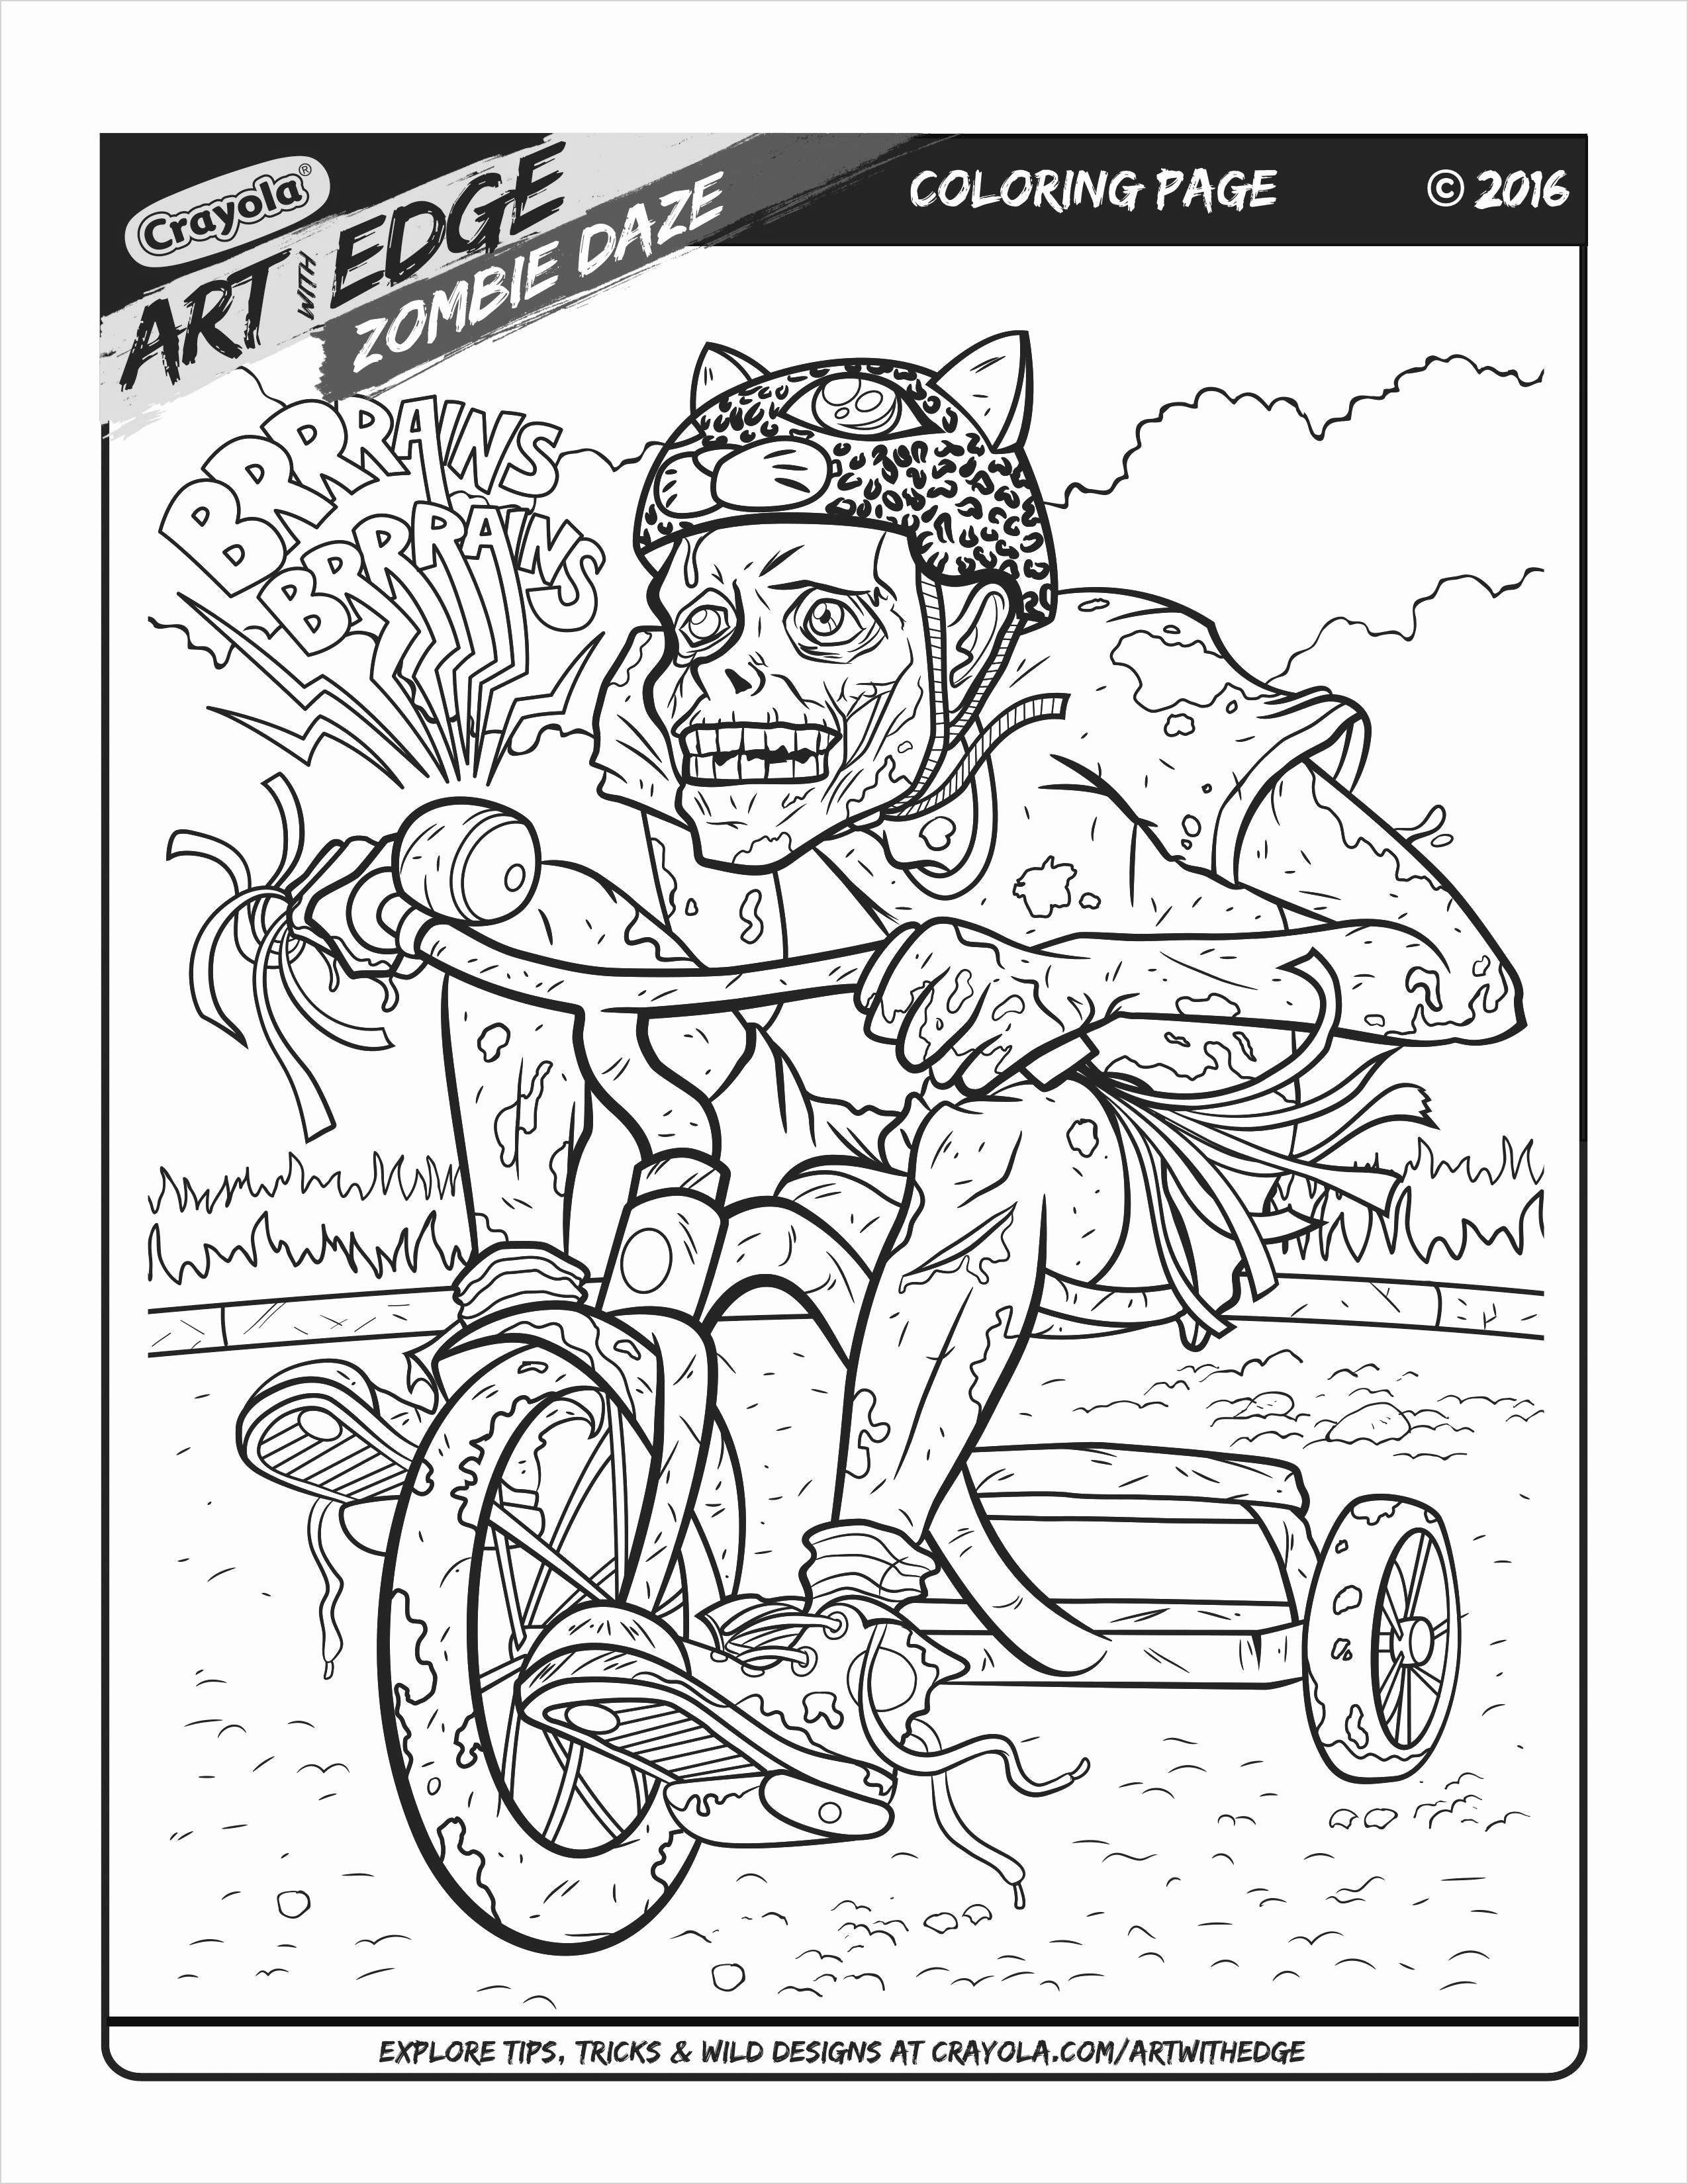 Fall Out Boy Coloring Pages Best Of 44 Bicycle Coloring Page In 2020 Coloring Pages For Boys Crayola Coloring Pages Love Coloring Pages